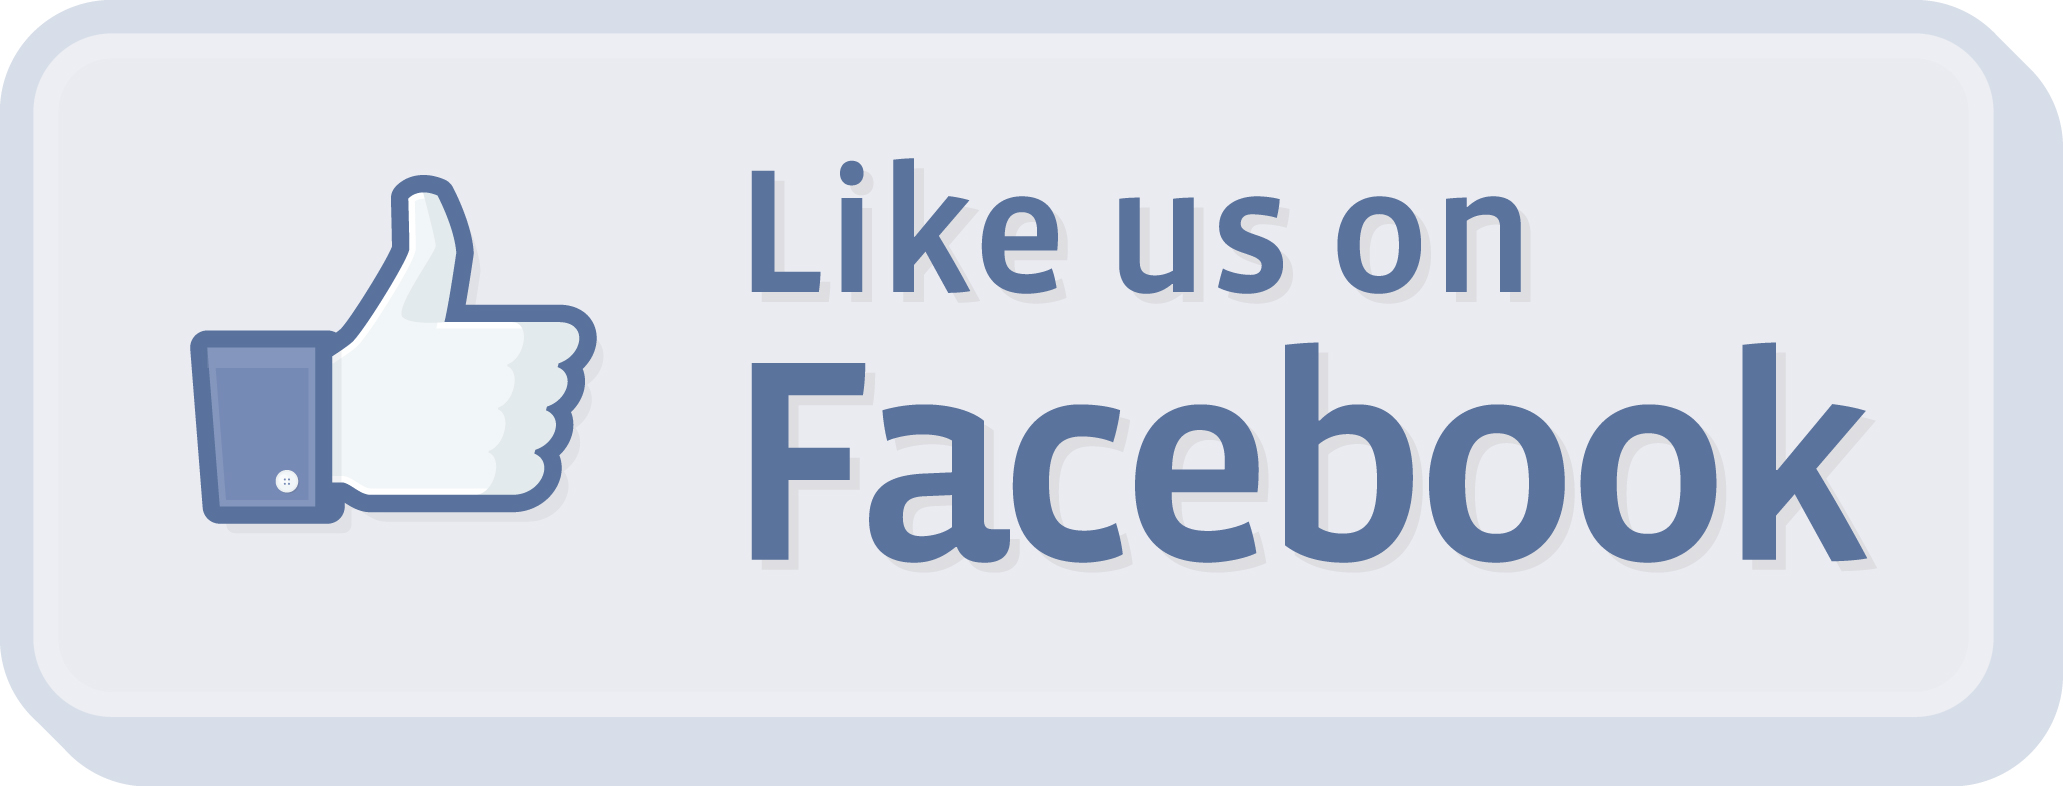 like us on facebook sticker template - like us on facebook template choice image template